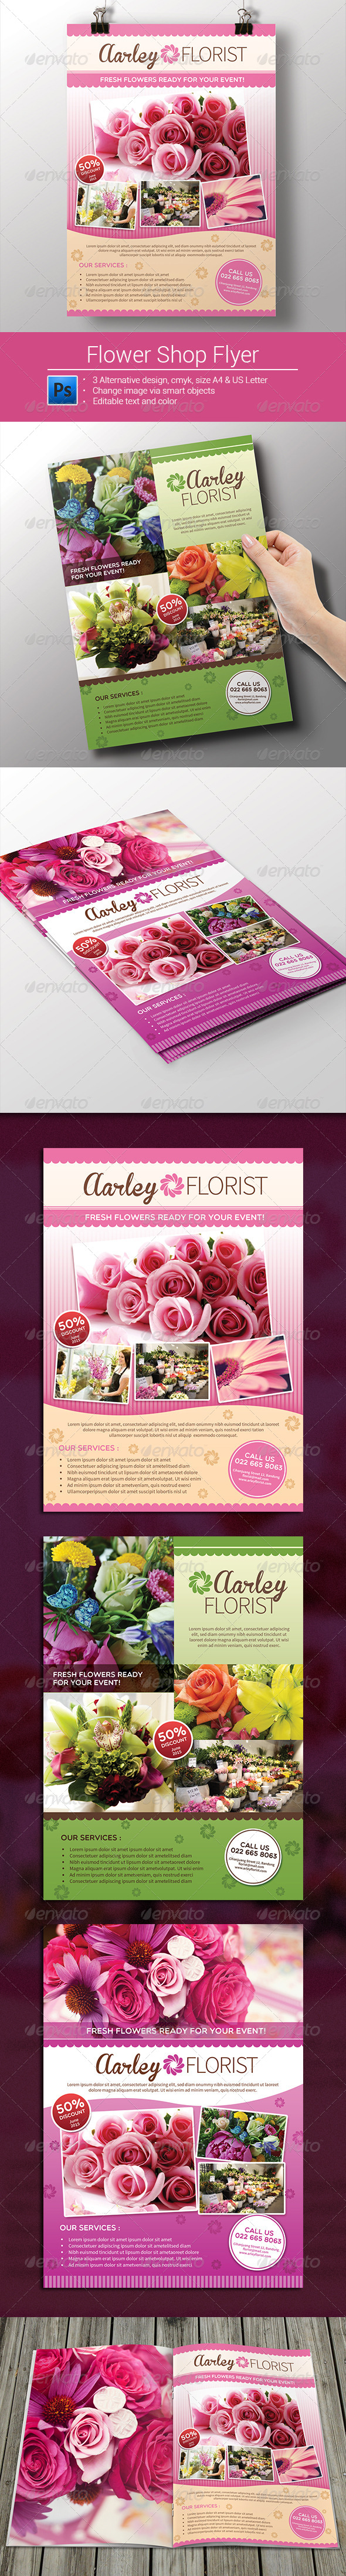 GraphicRiver Flower Shop Flyer Magazine Ad 8279050